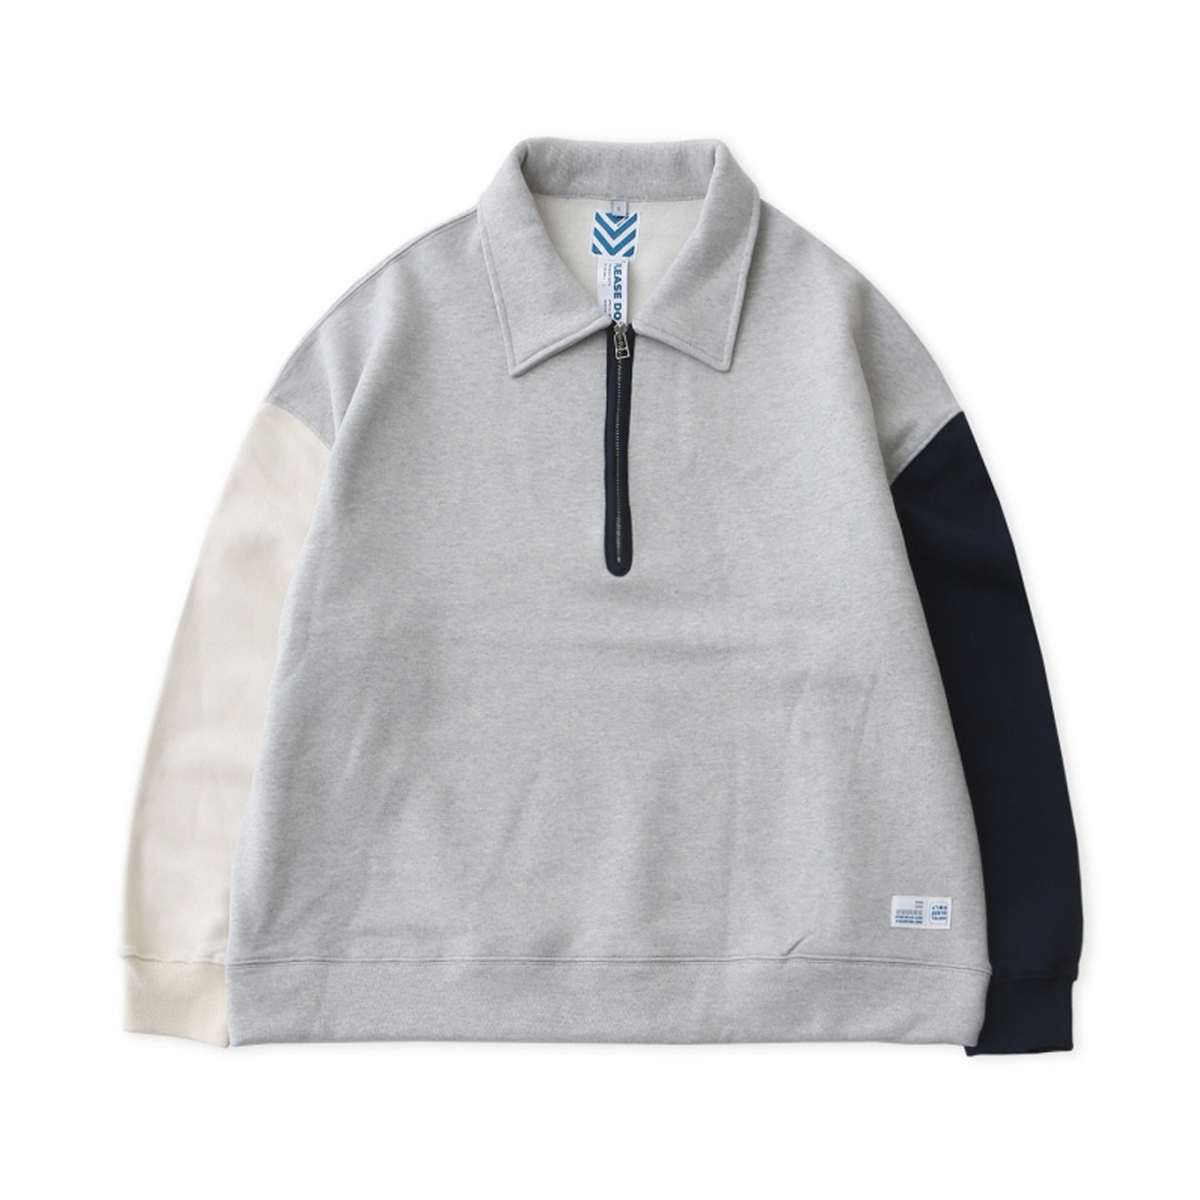 [DAILY INN] REMIXED 3 COLORS HEAVY WEIGHT OVERSIZED HALF ZIP-UP SWEAT WITH KIREAN STUDIO 'REMIX'